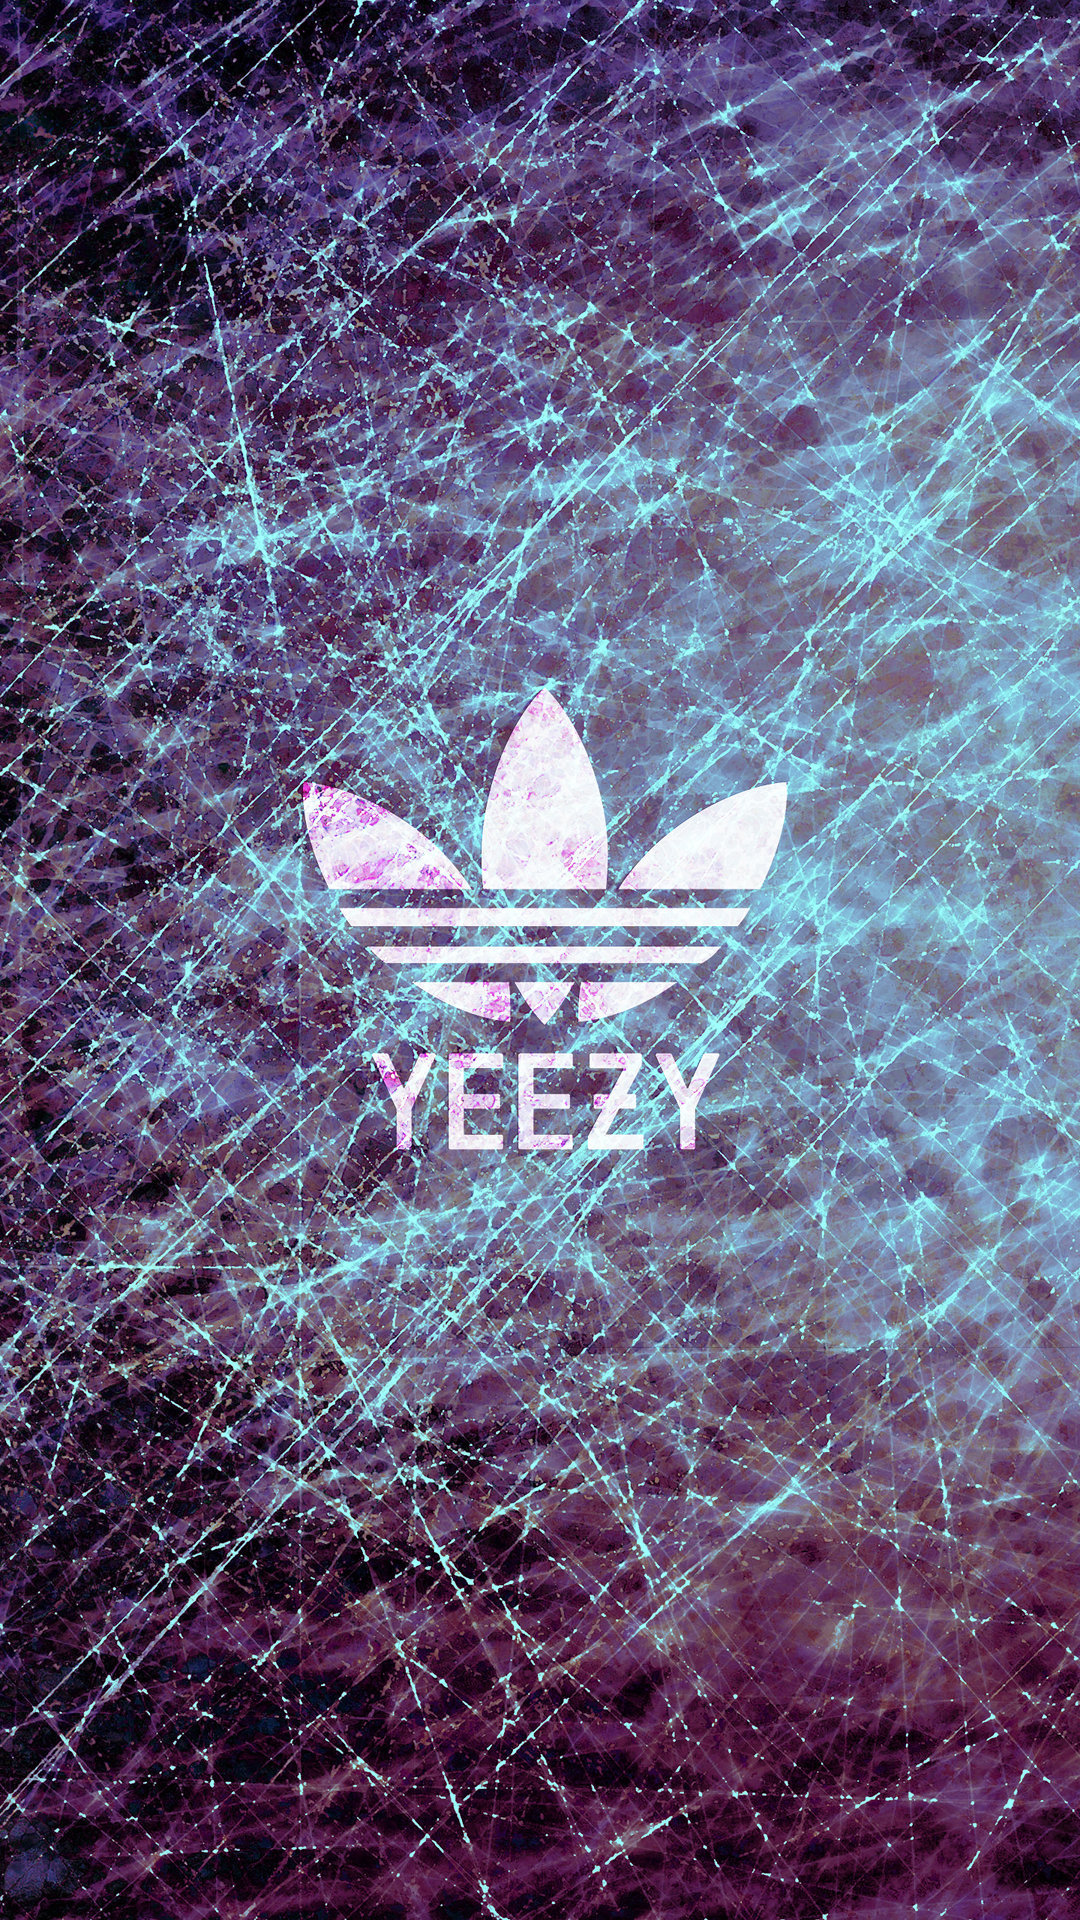 Yeezy Wallpaper